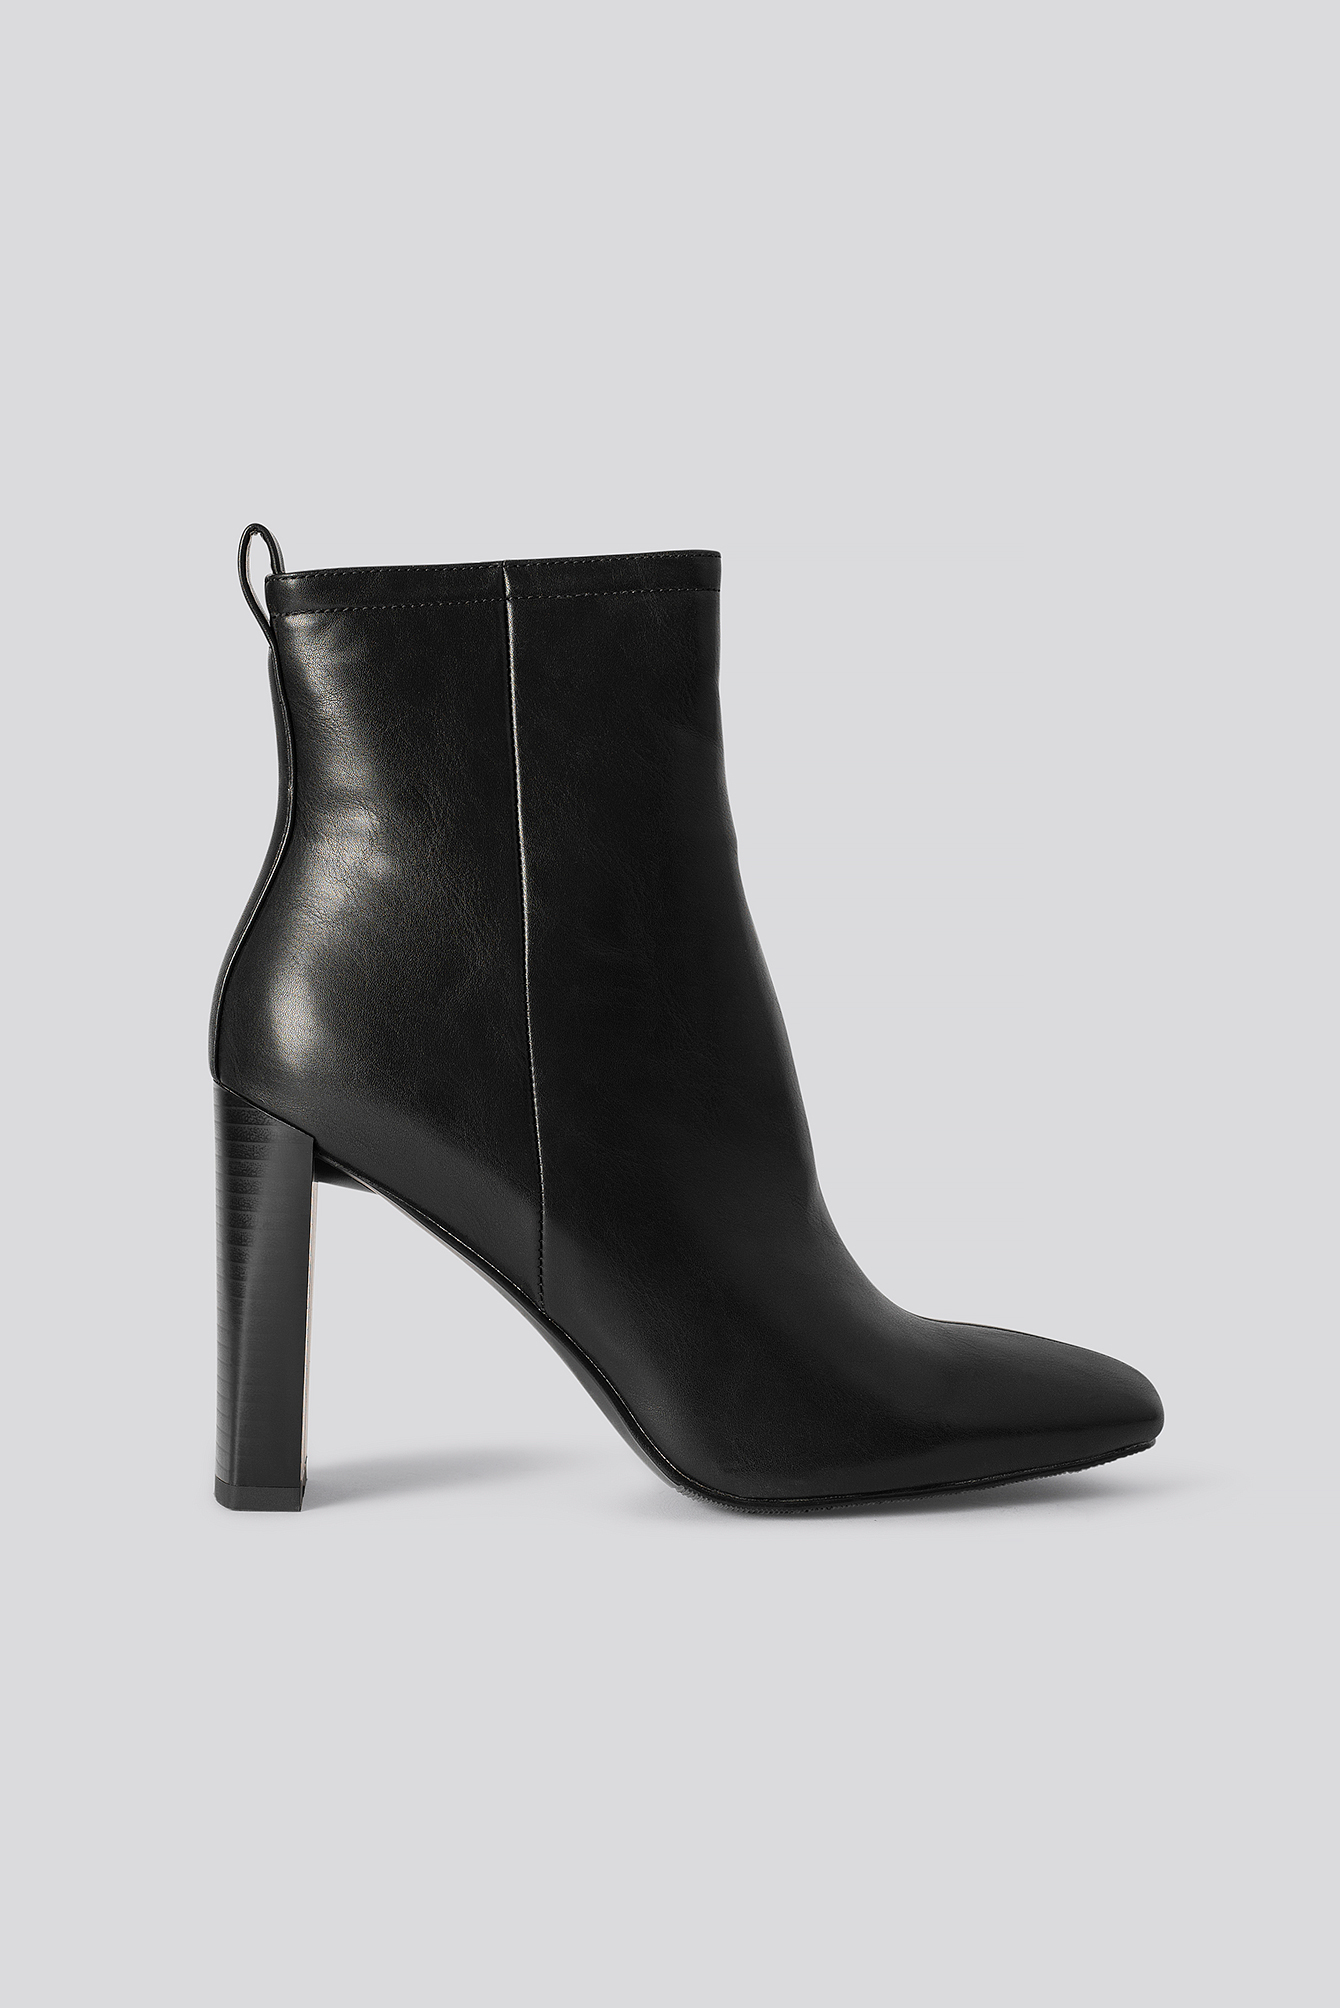 na-kd shoes -  Squared Toe Slim Heel Boots - Black